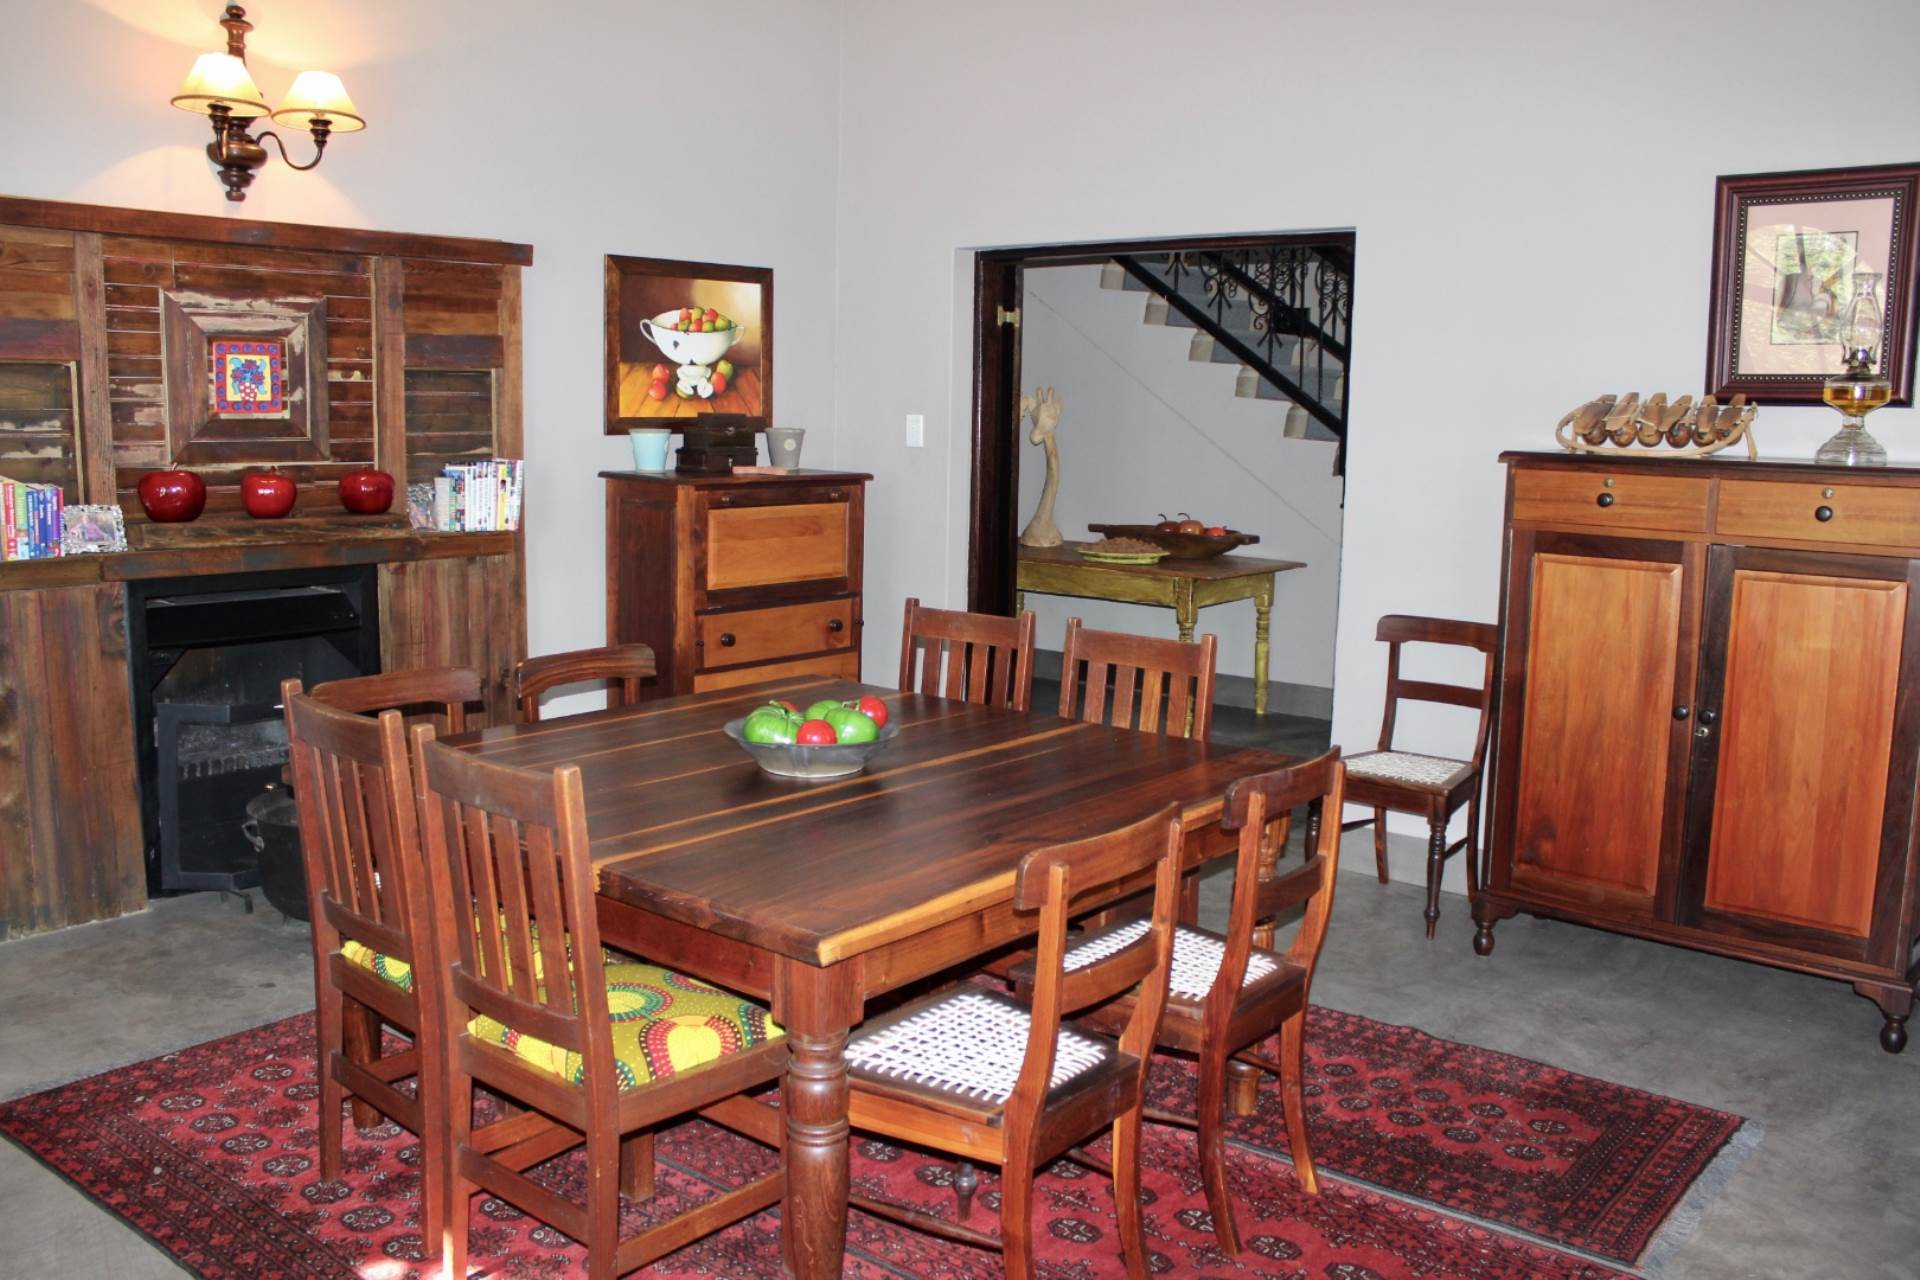 Dining room sets for sale craigslist